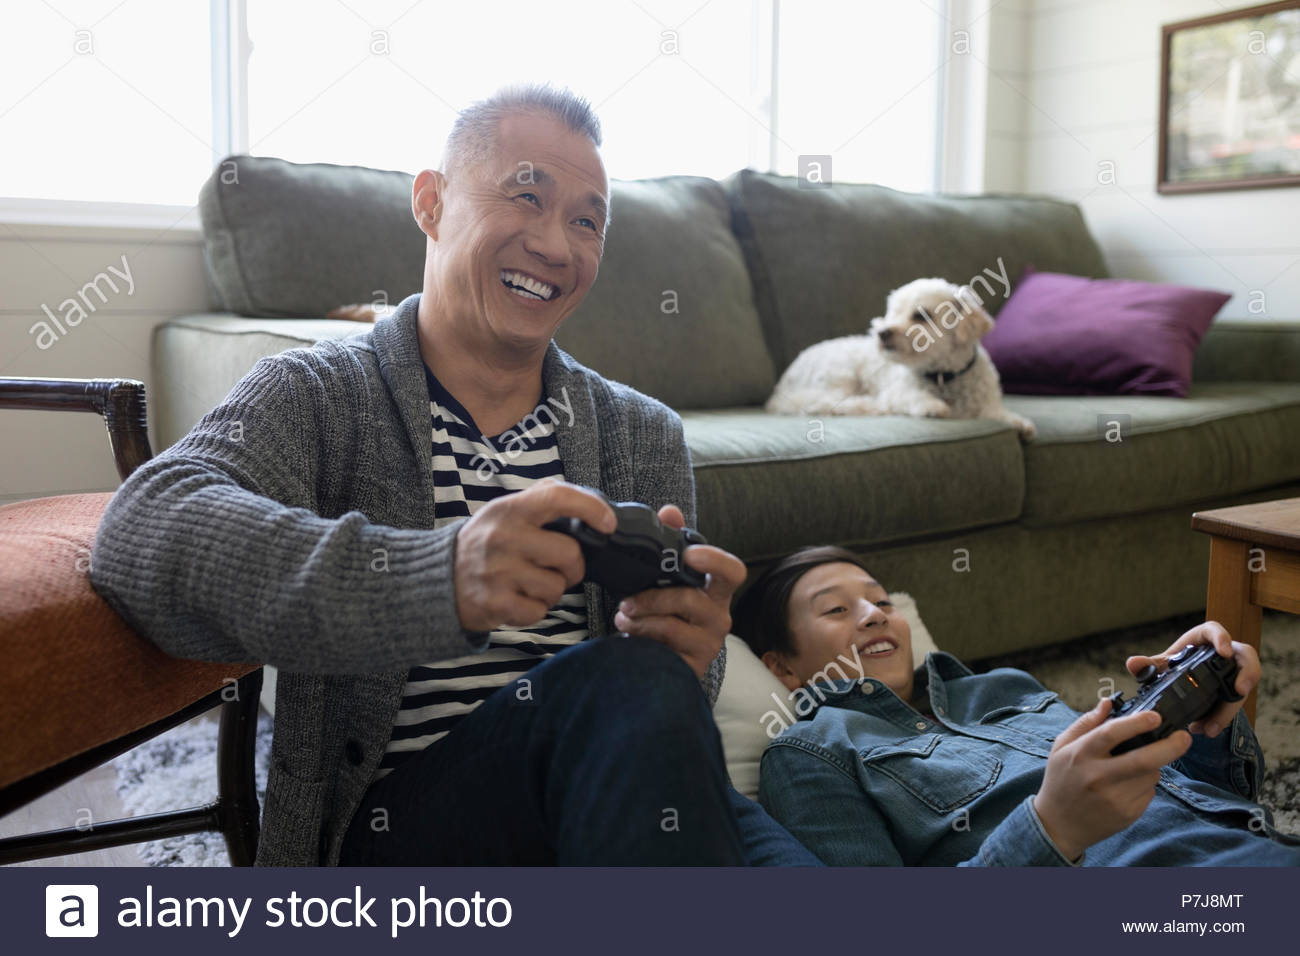 Dog watching happy father and son playing video game in living room - Stock Image